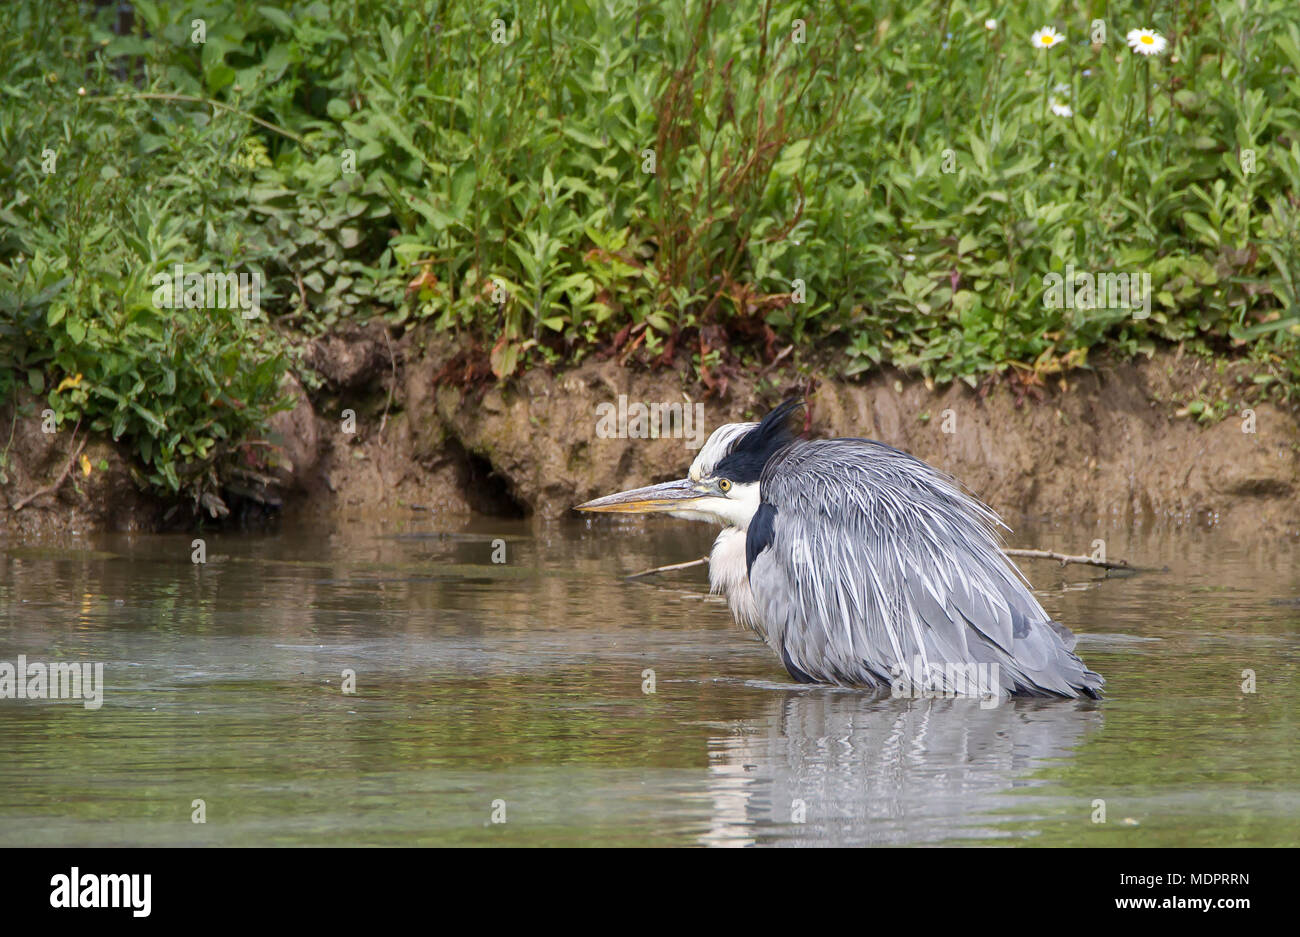 Detailed close-up side view of isolated UK grey heron bird (Ardea cinerea) wading in water, crouching down, creeping stealthily, hunting for fish. - Stock Image